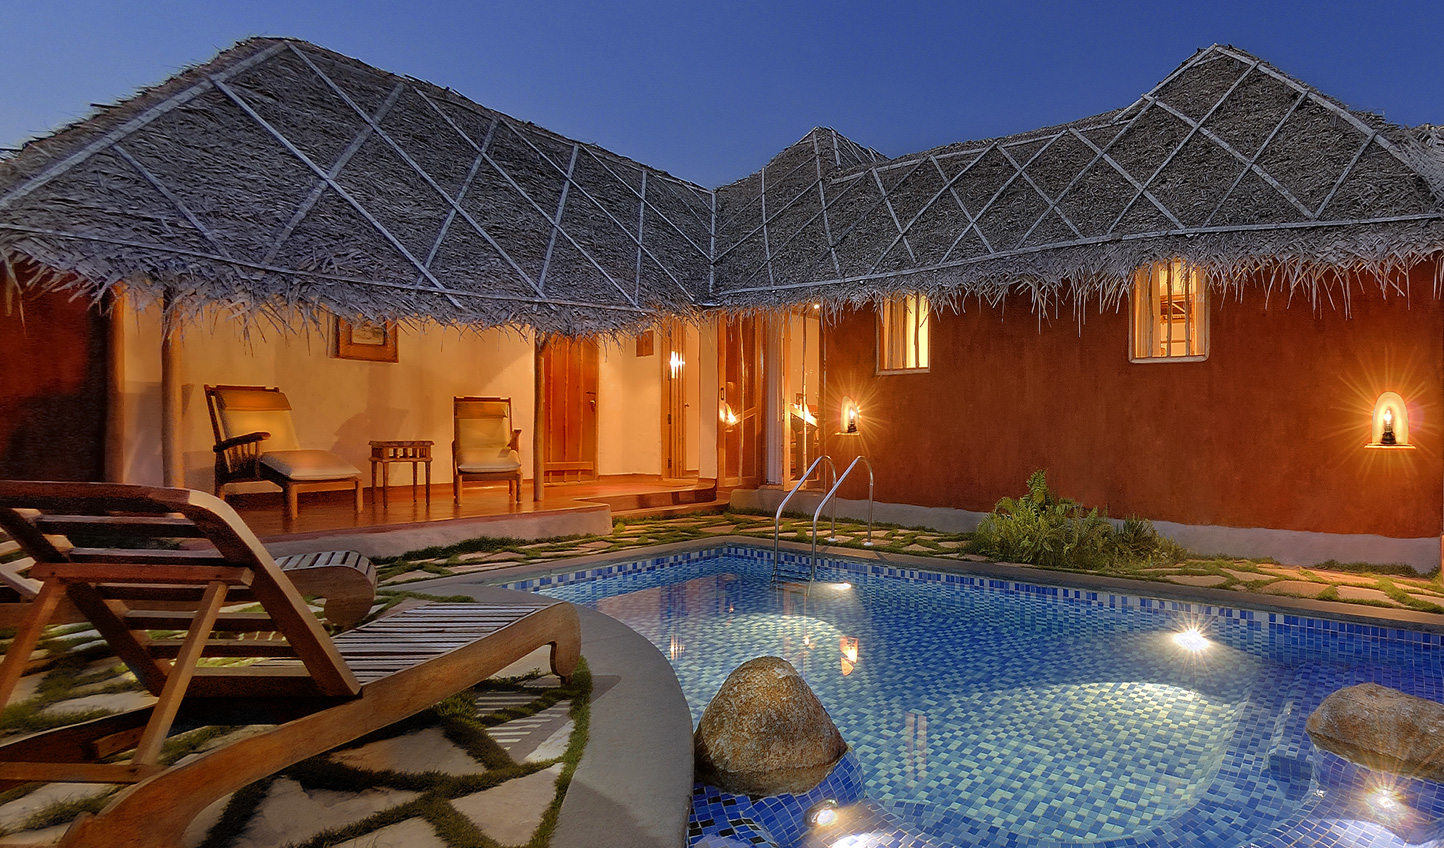 Check into one of the spacious Pool Huts and simply relax